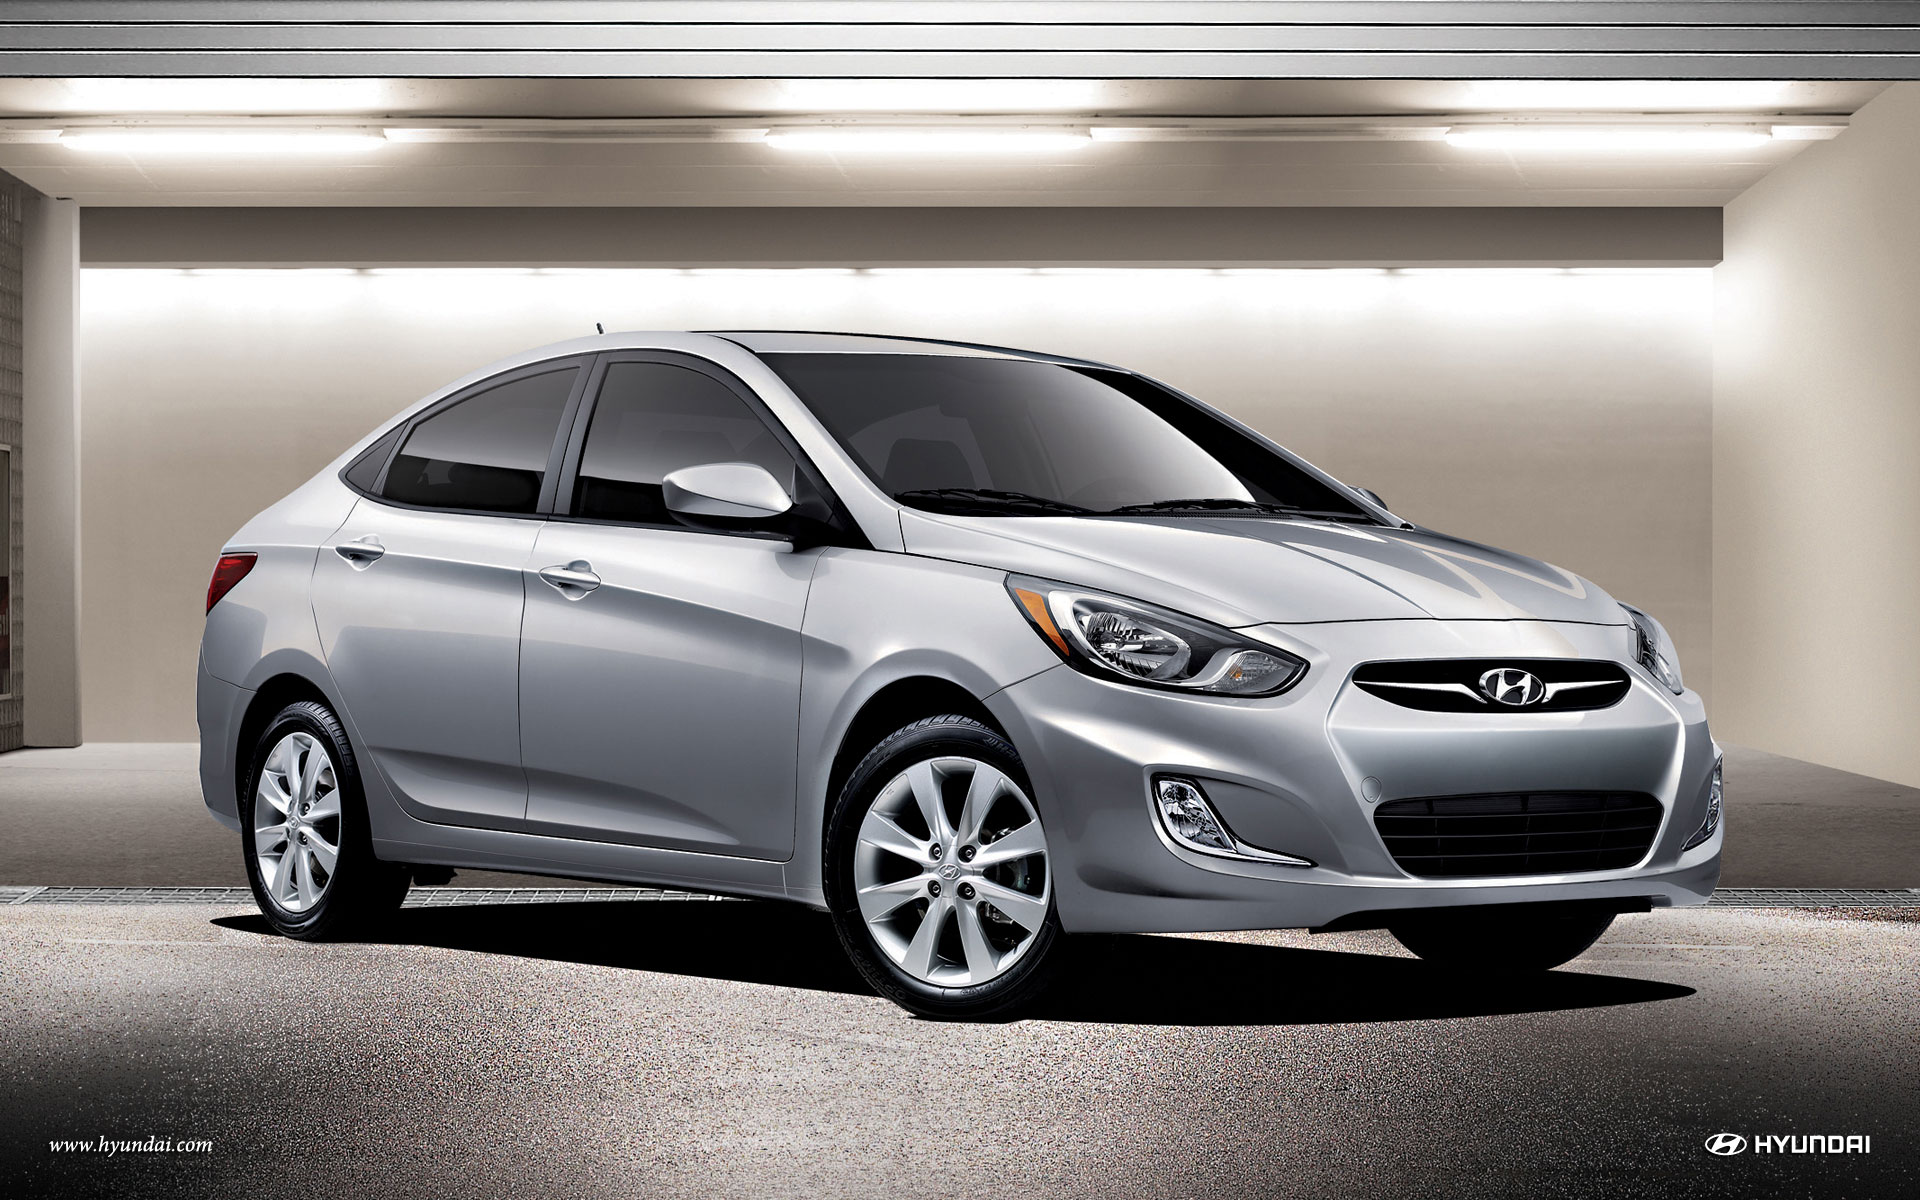 Fort Worth Toyota >> 2013 Hyundai Accent Review, Ratings, Specs, Prices, and ...